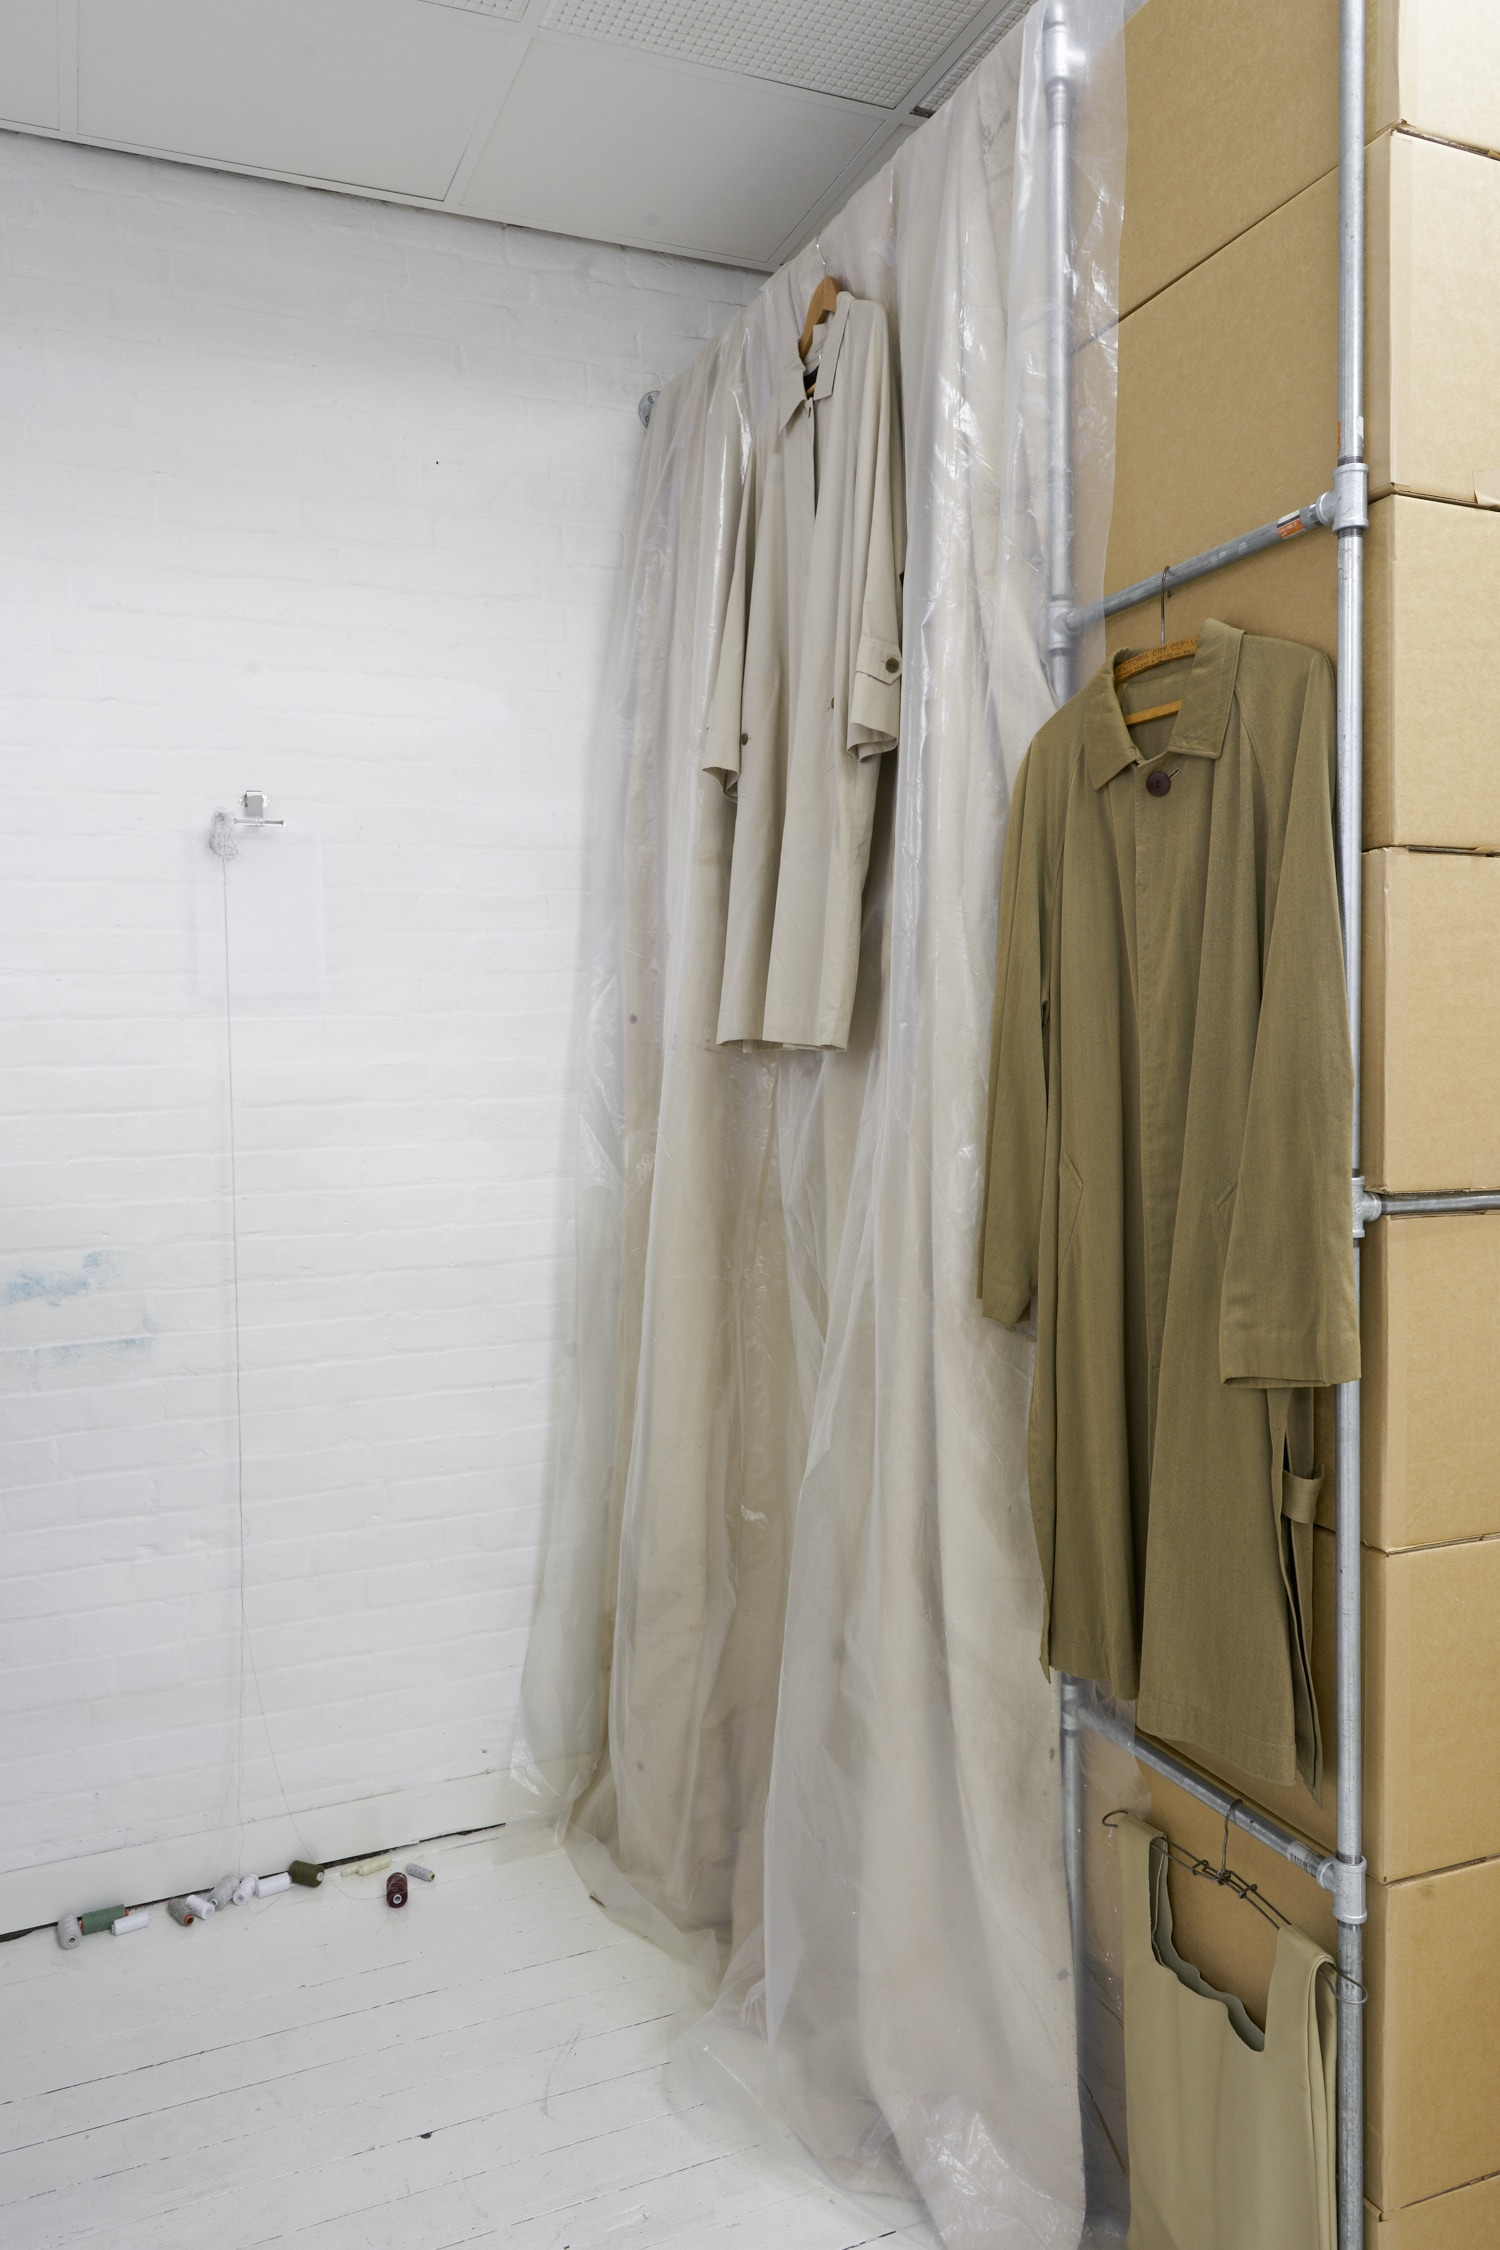 left: Pony Horseman,  Maintenance , 2019. Found objects: PVC binder sheets, assorted threads (cotton and polyester), metal fixtures.  top: Clare Matthews,  Purchased hanger attached to garment , date unknown. Wood and metal.  bottom: Simon Blight,  Found hanger , date unknown. Metal.